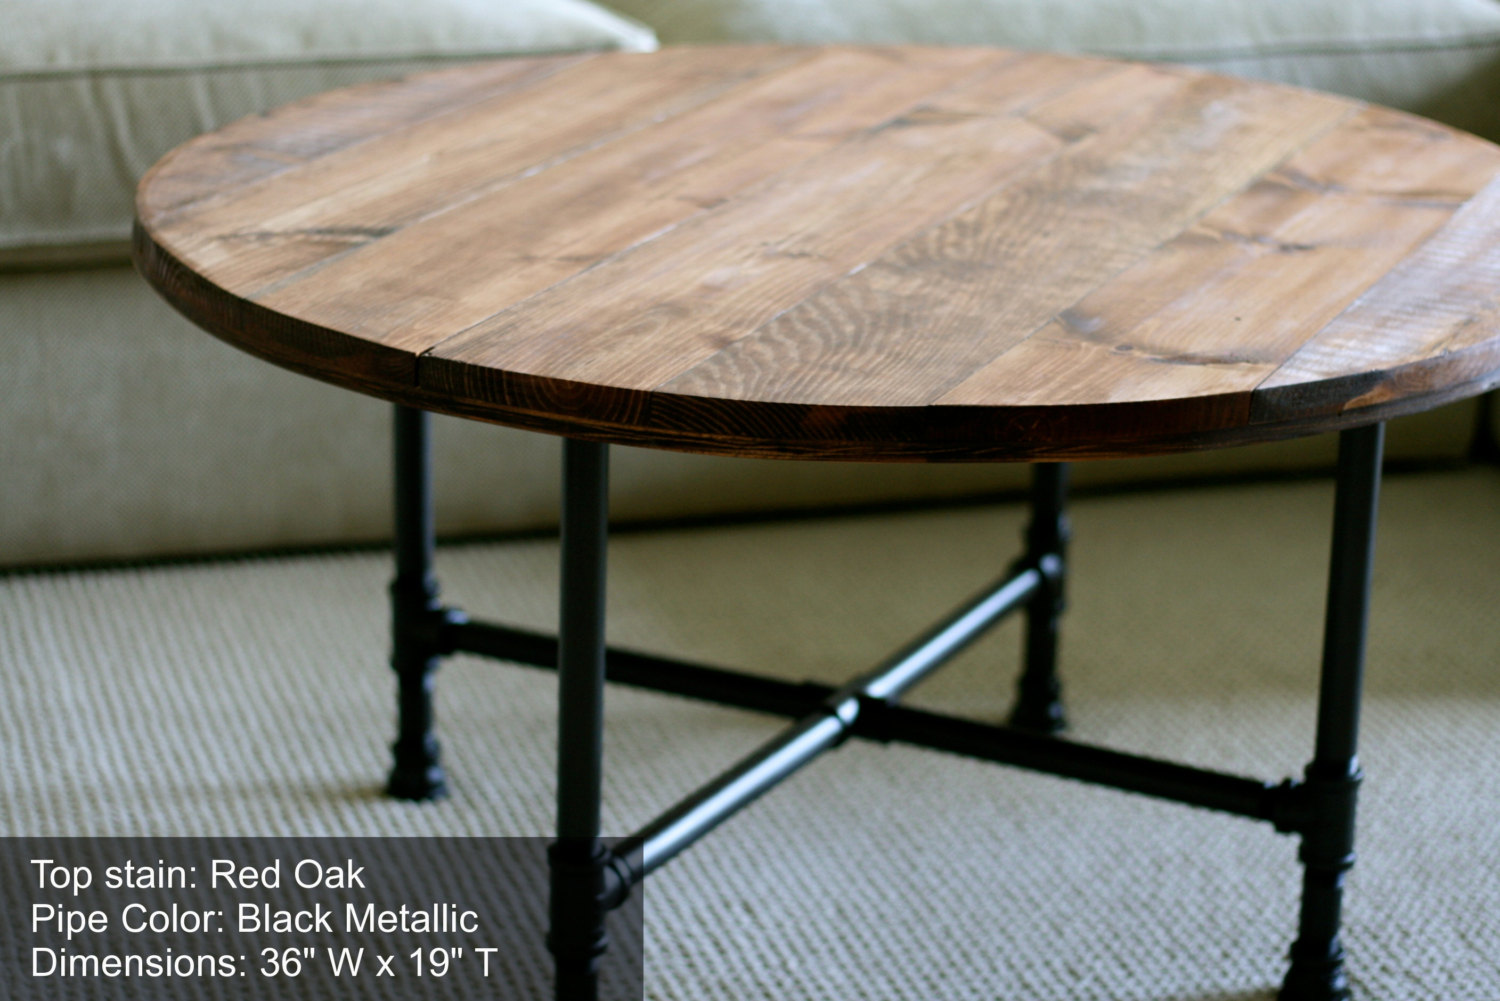 Round Industrial Coffee Table Reclaimed Wood Furniture Industrial Pipe Legs Rustic Table Distressed Round Coffee Table (Image 9 of 10)